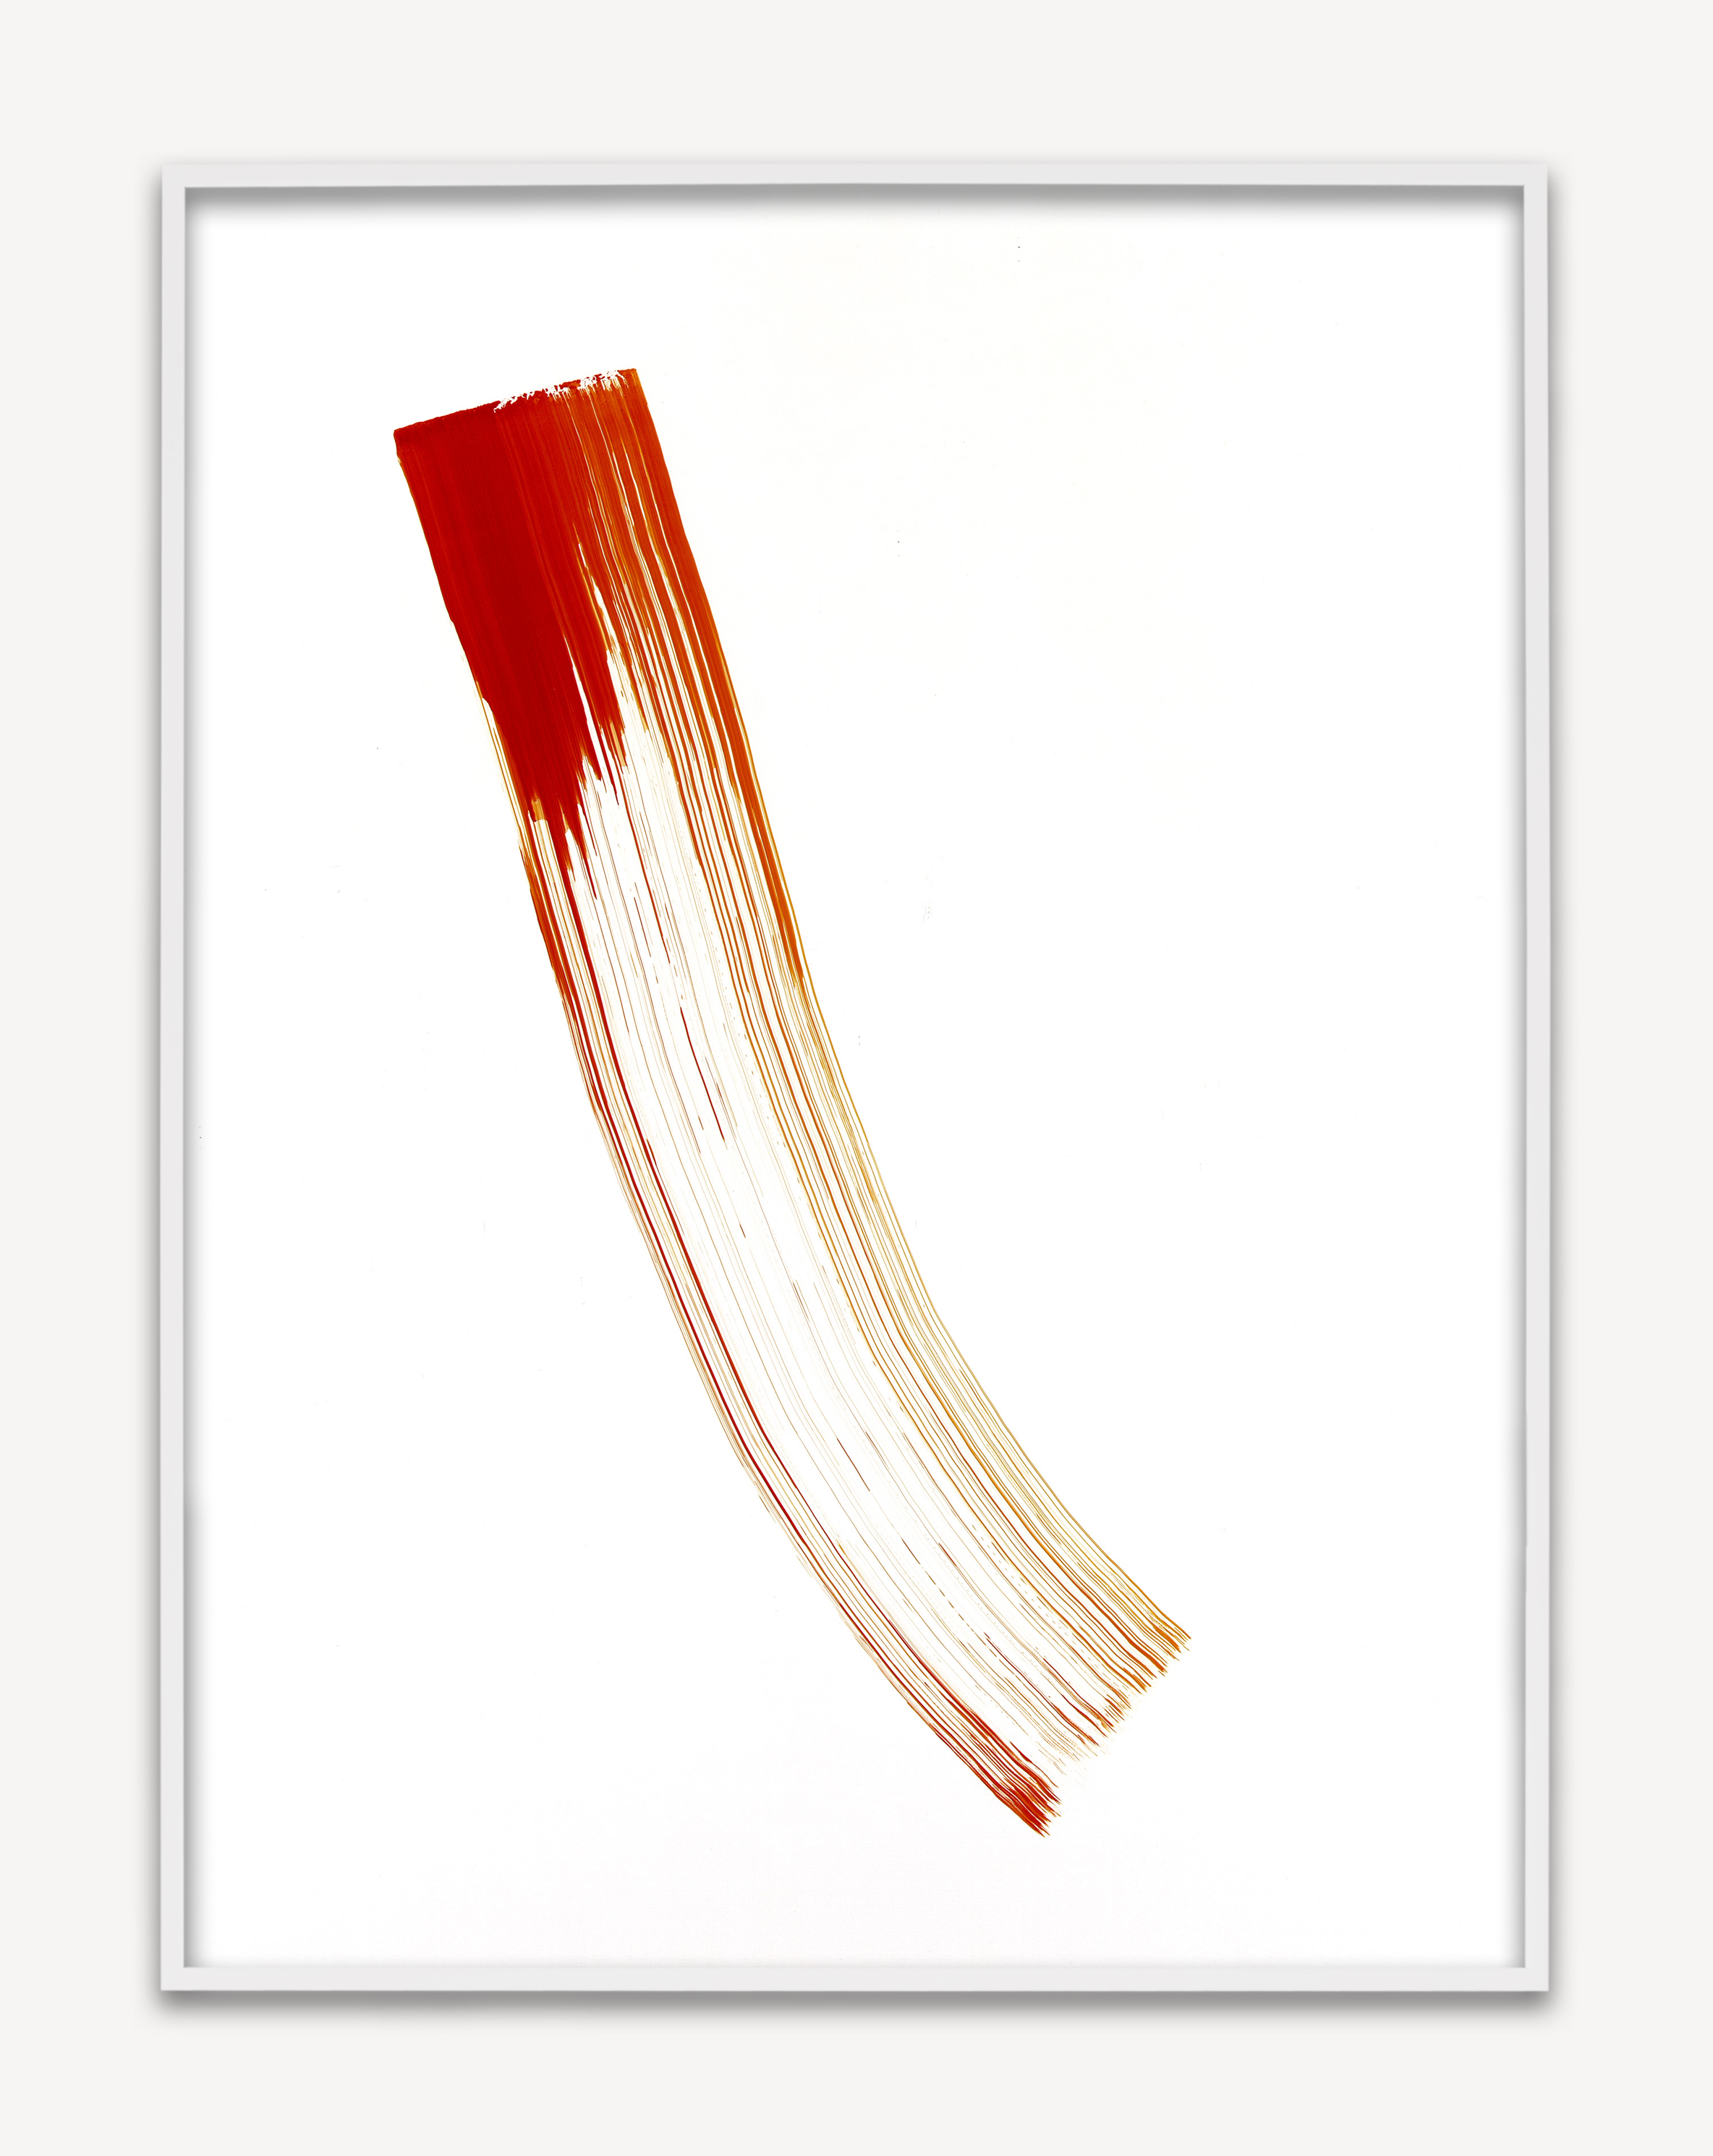 Replacement Ink for Epson Printers (Red and Yellow 172203) on Epson Premium Luster Paper, 2014 unique archival pigment print 43,2 x 56 cm - 17 x 22 inches